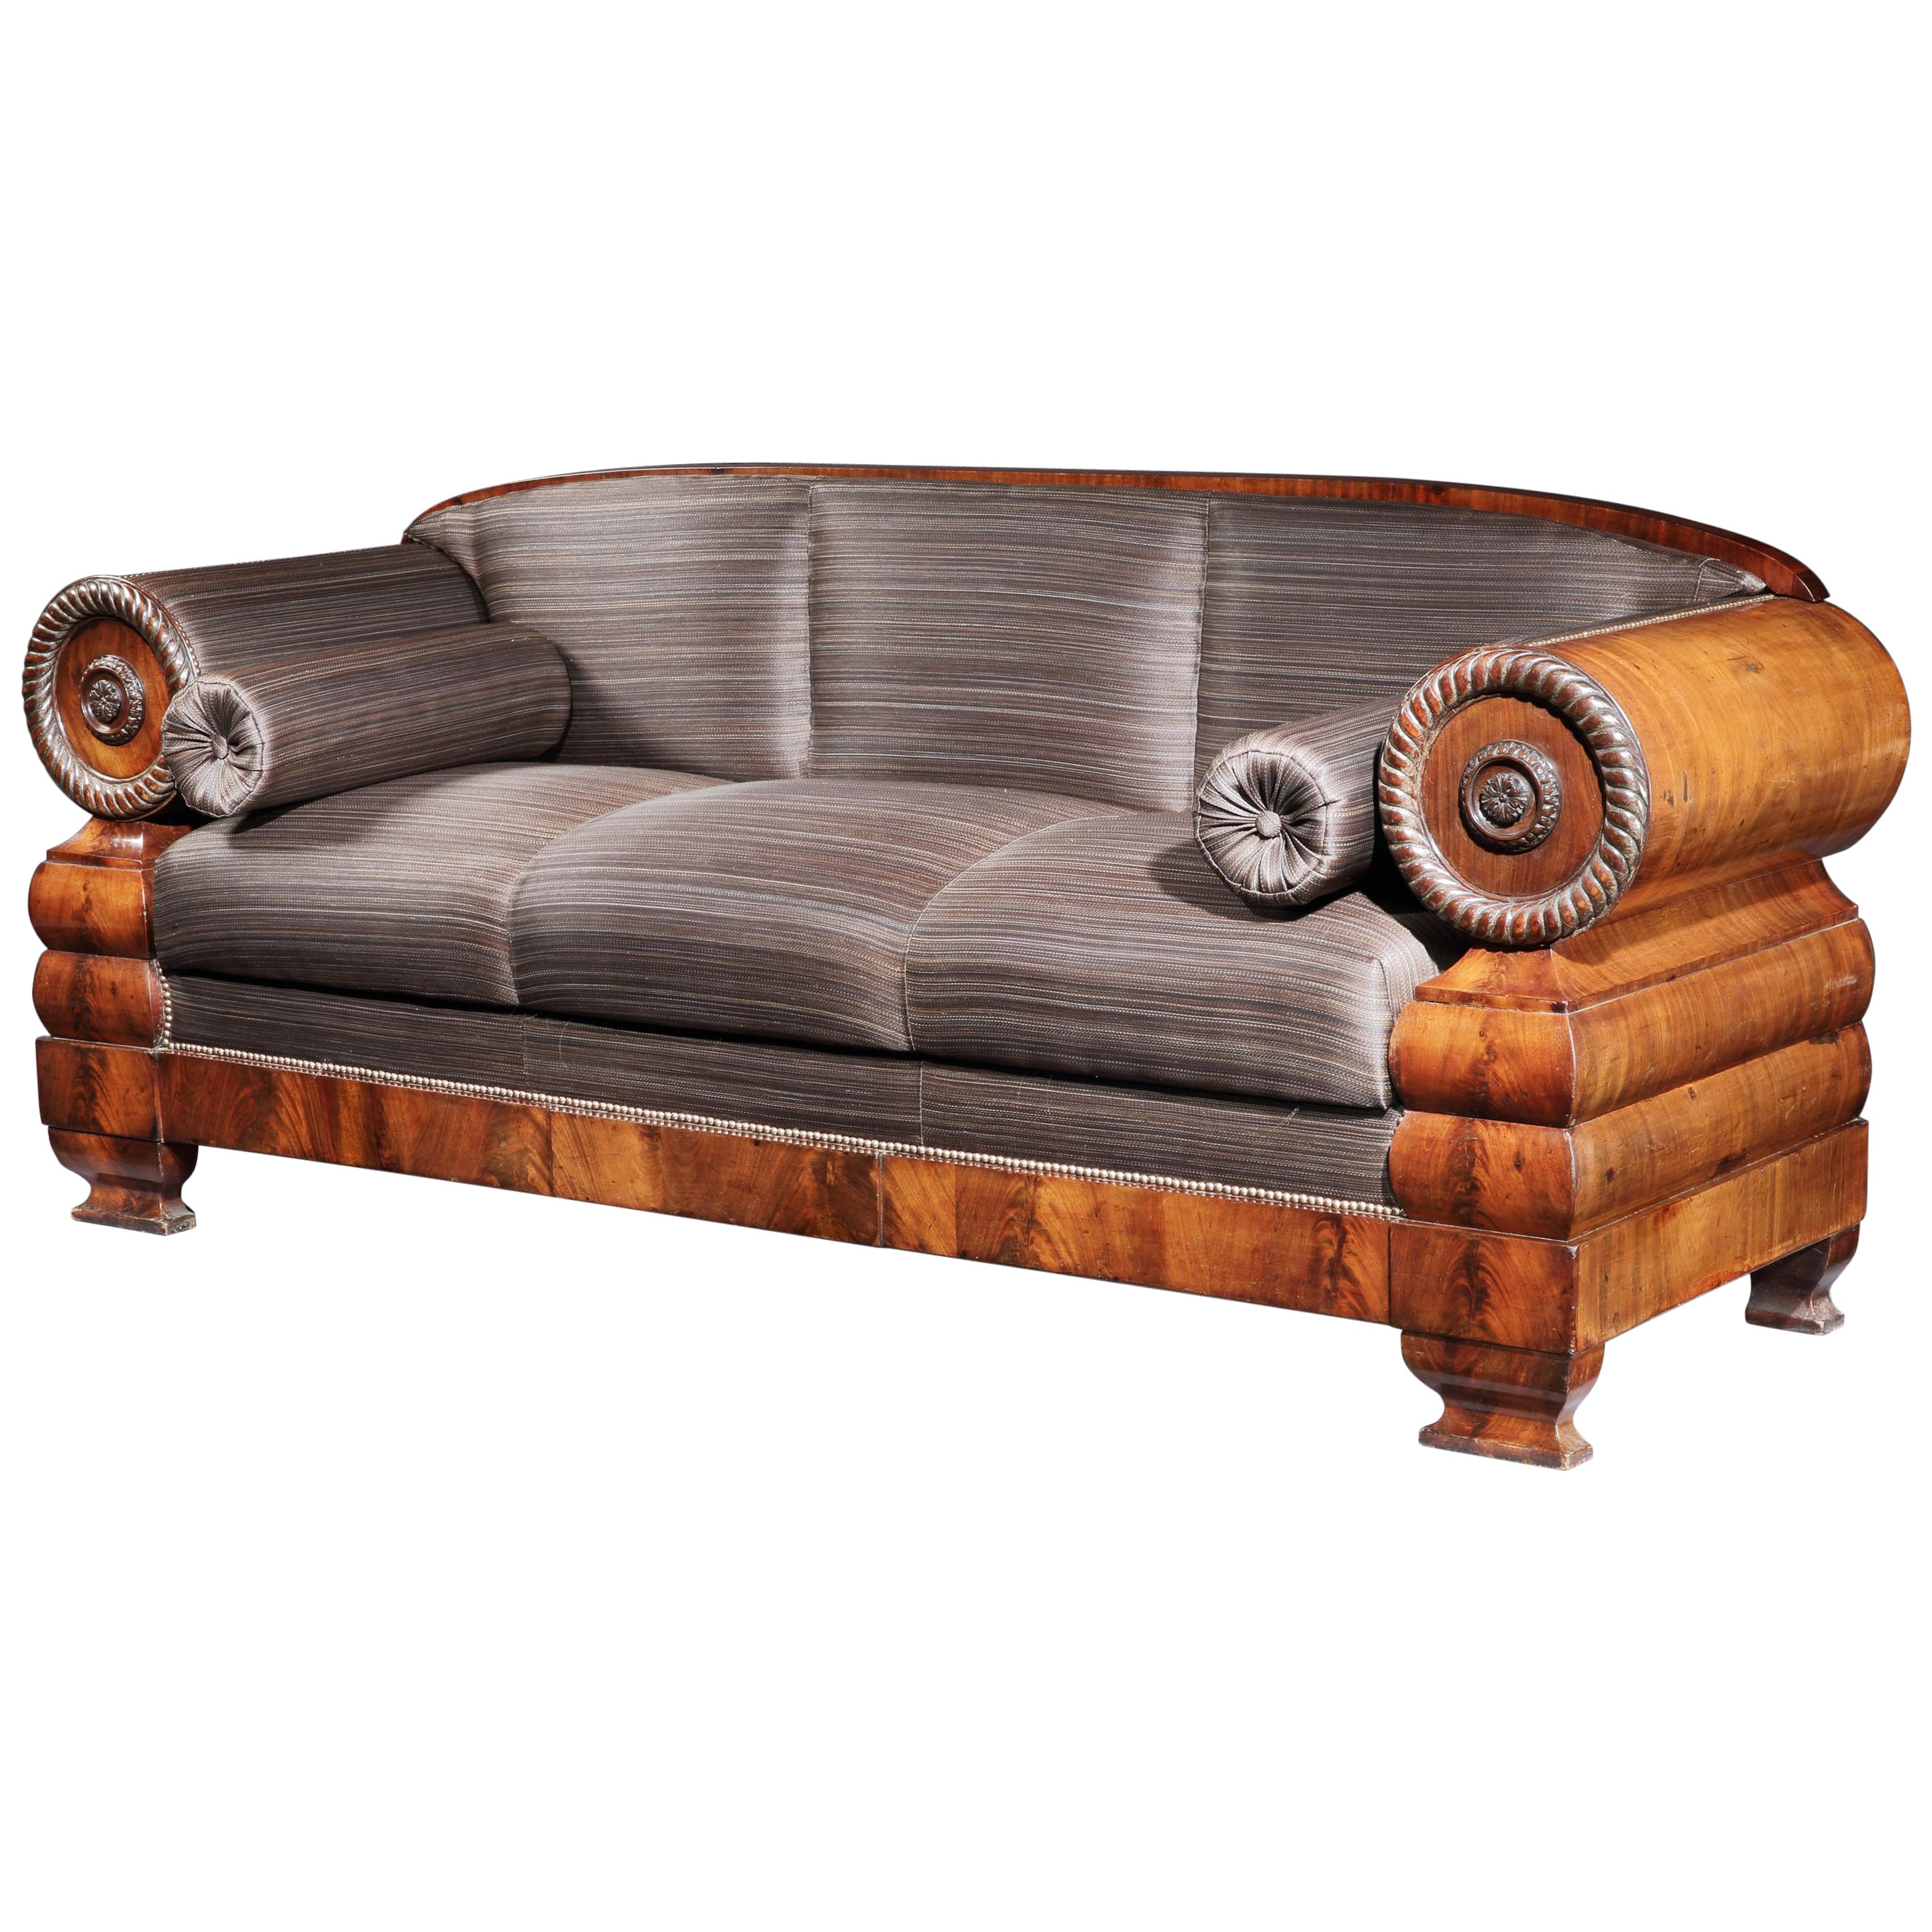 Settee 3-Seat Early 19th Century French Empire Mahogany Upholstered in Horsehair